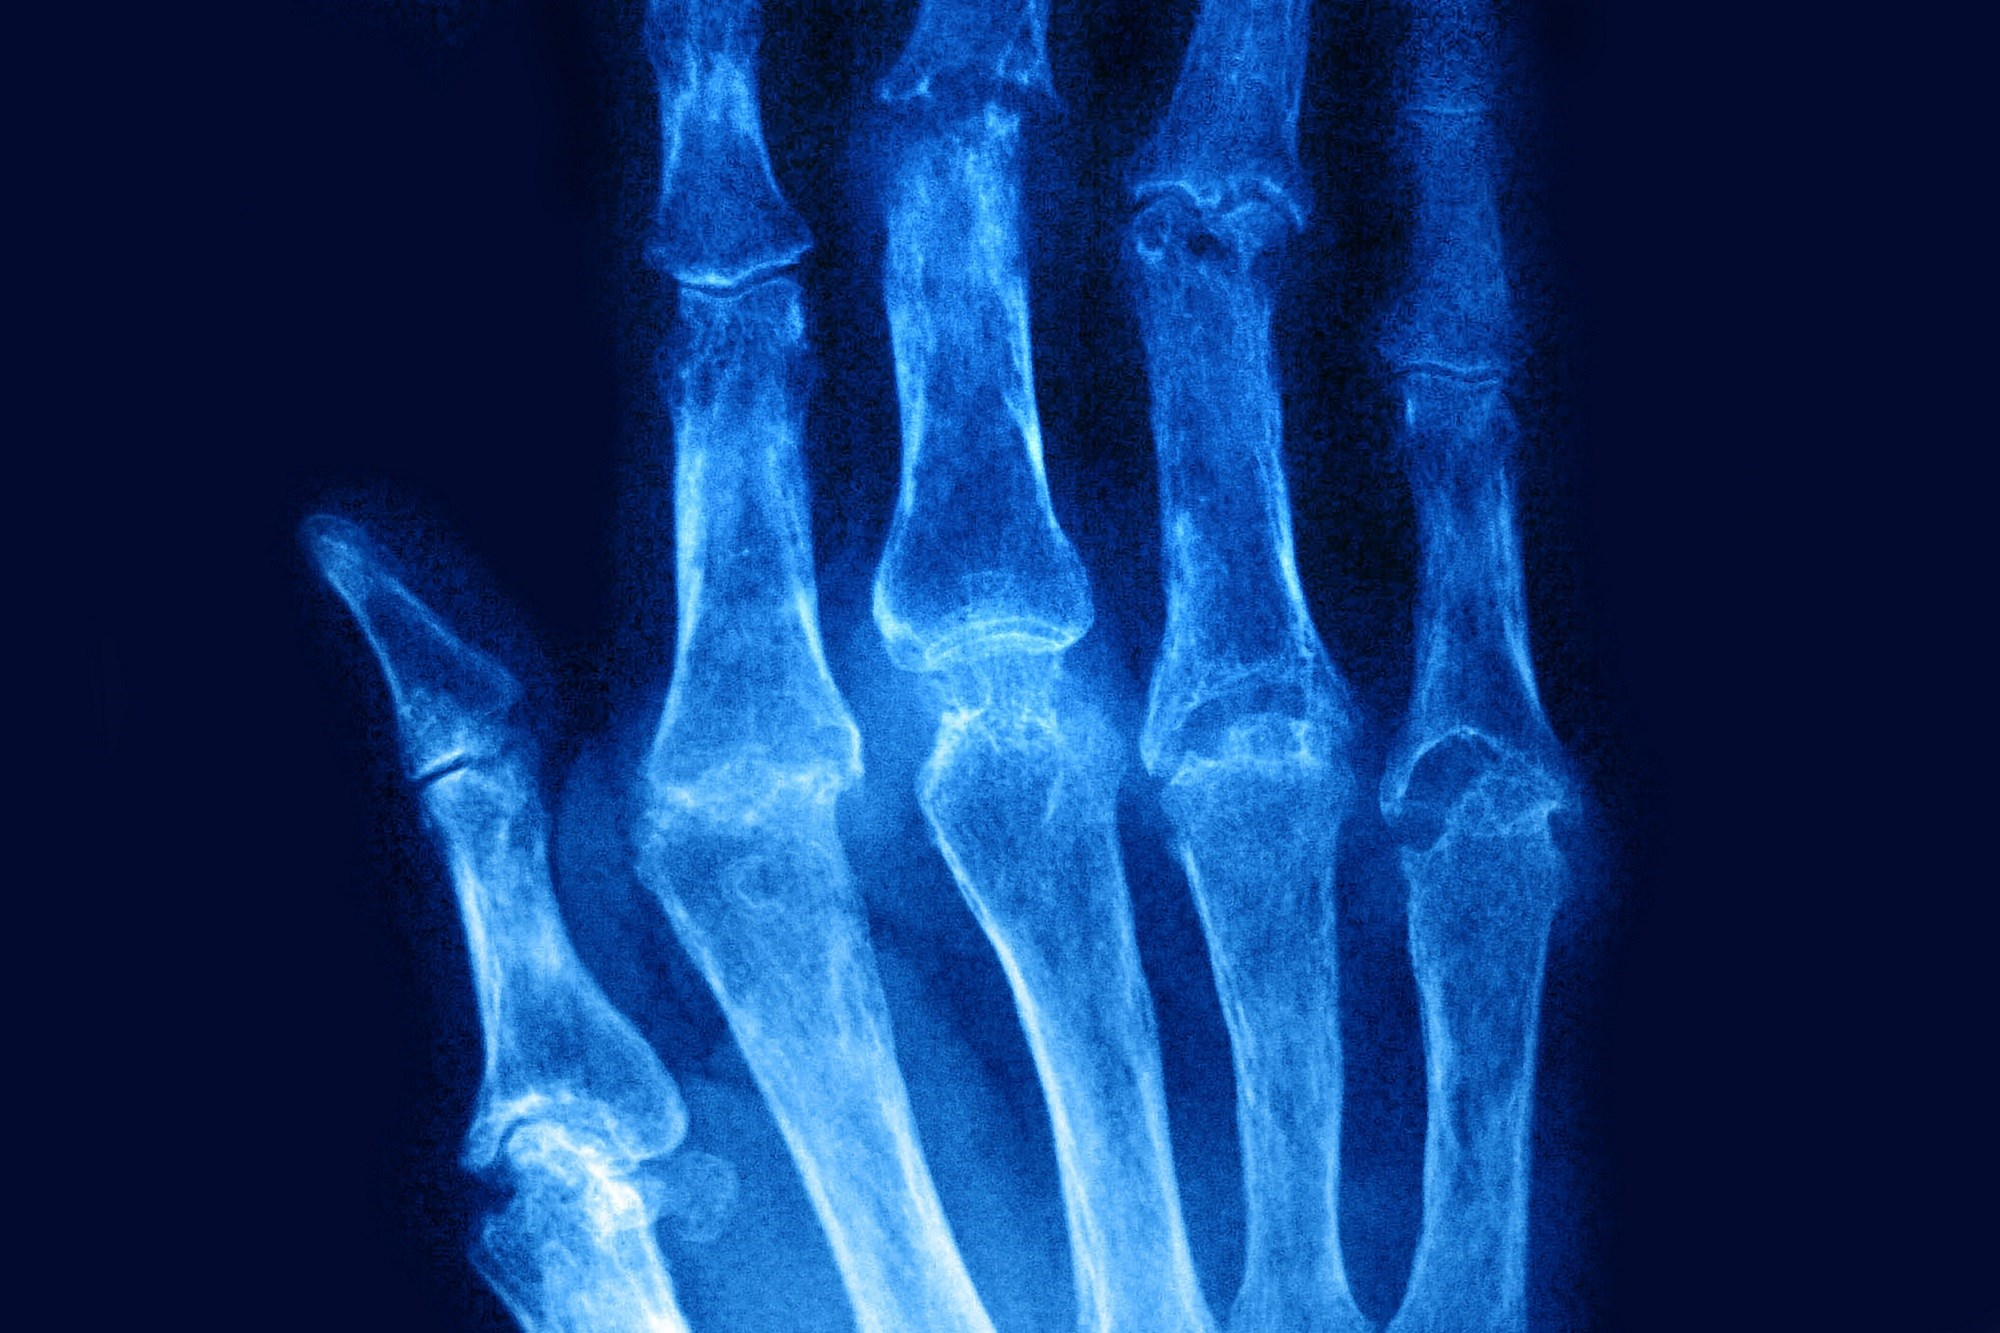 Metacarpal demineralization is an early hallmark of RA that is well suited for detection by automated DXR, which offers excellent sensitivity and specificity. <i>Photo Credit: BSIP/CAVALLINI JAMES</i>